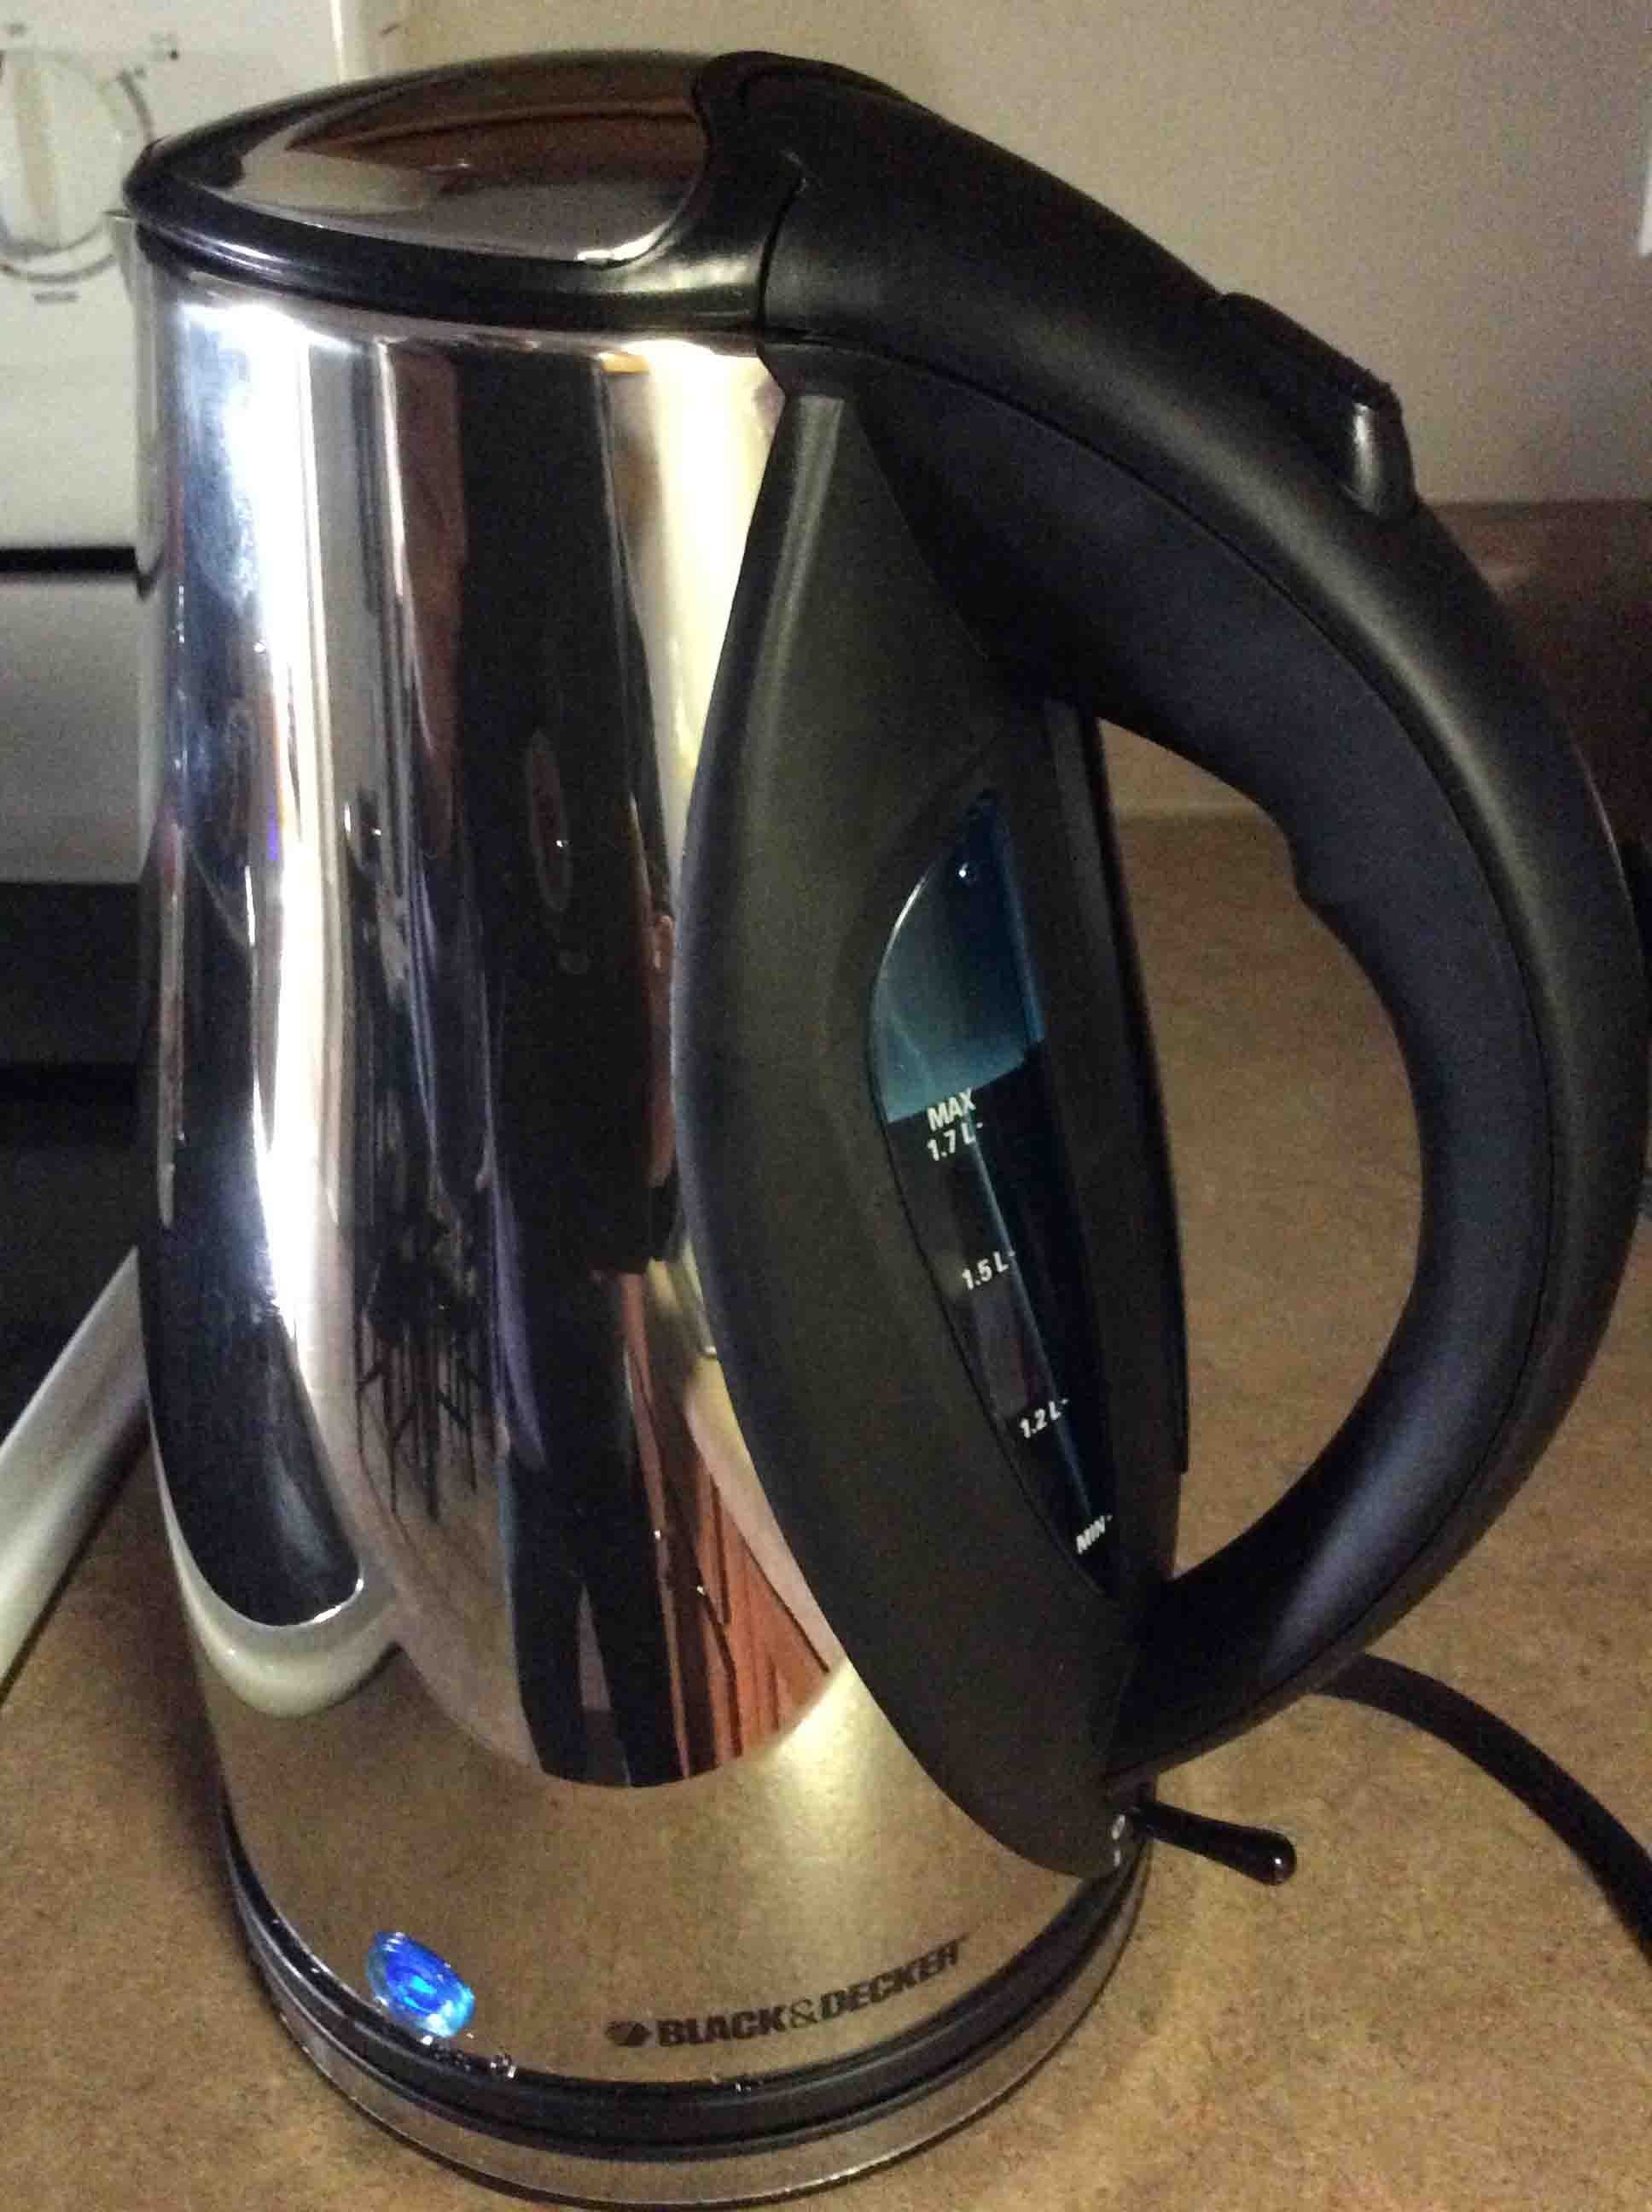 Cordless Water Kettle Black Amp Decker 174 Jkc930c Review Tom